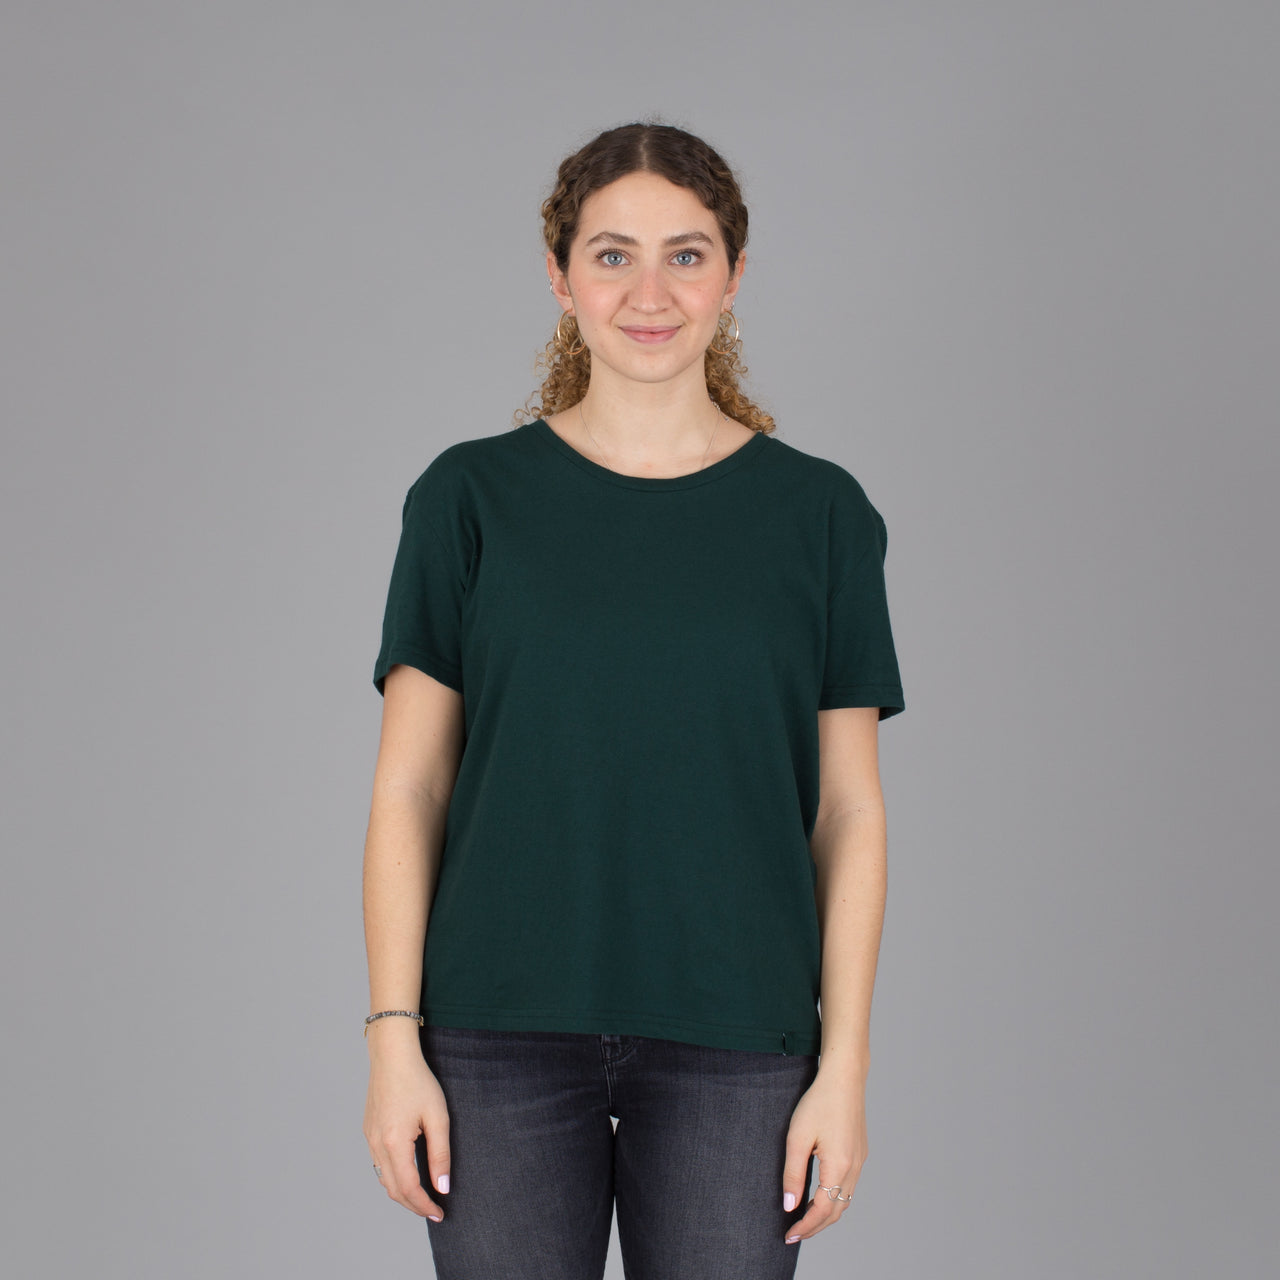 Relaxed Fit Organic Cotton Tee - Emerald